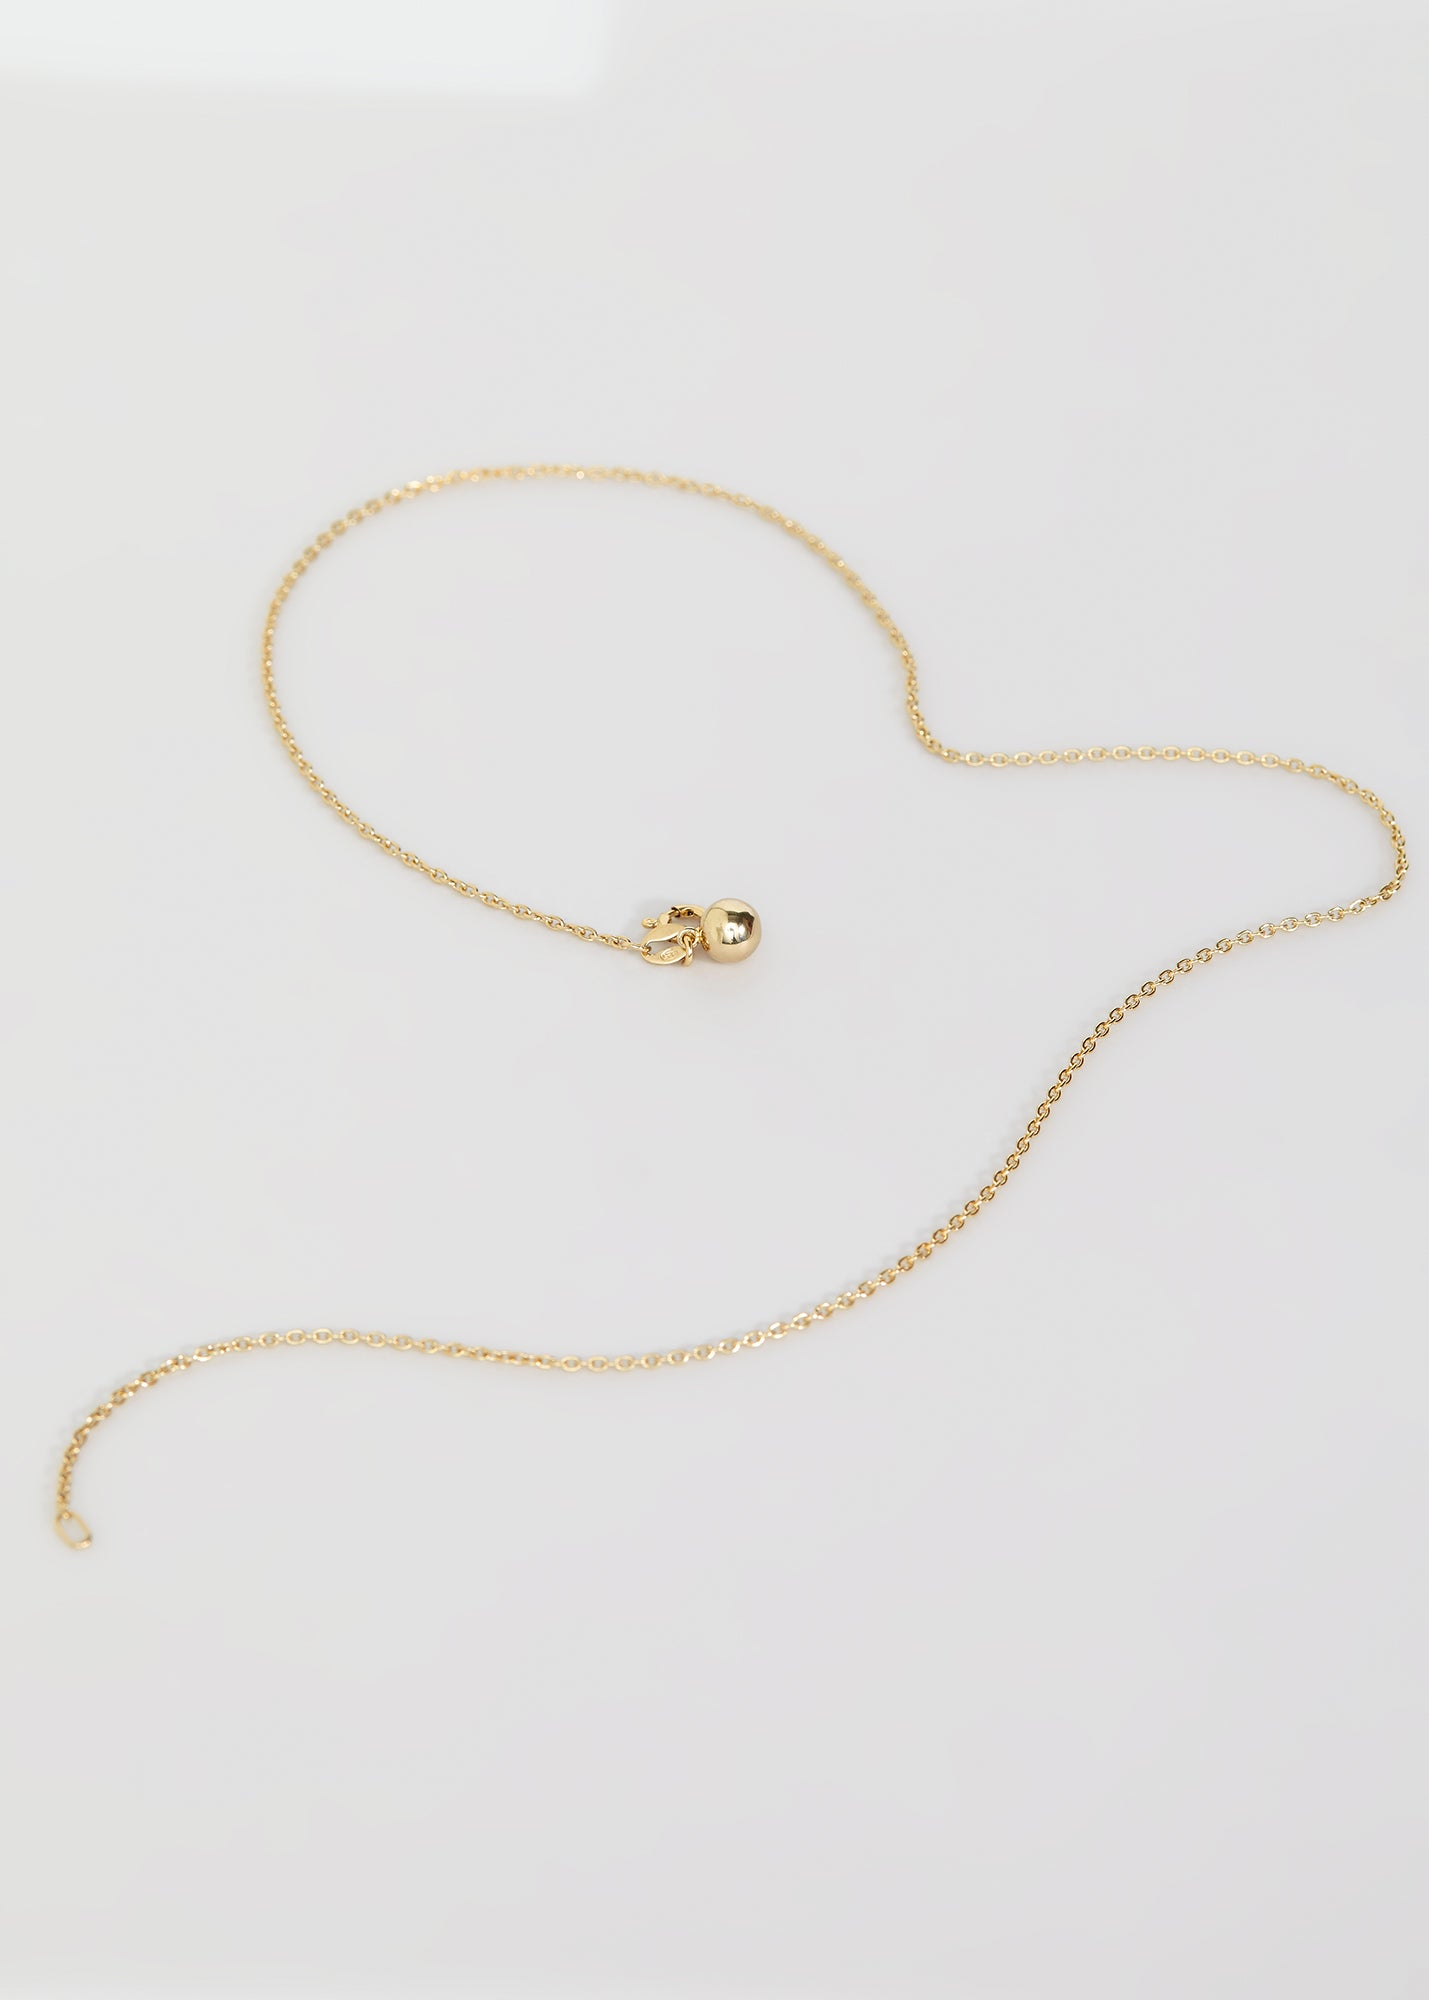 Trine Tuxen Jewelry Chain - Trine Tuxen Jewelry